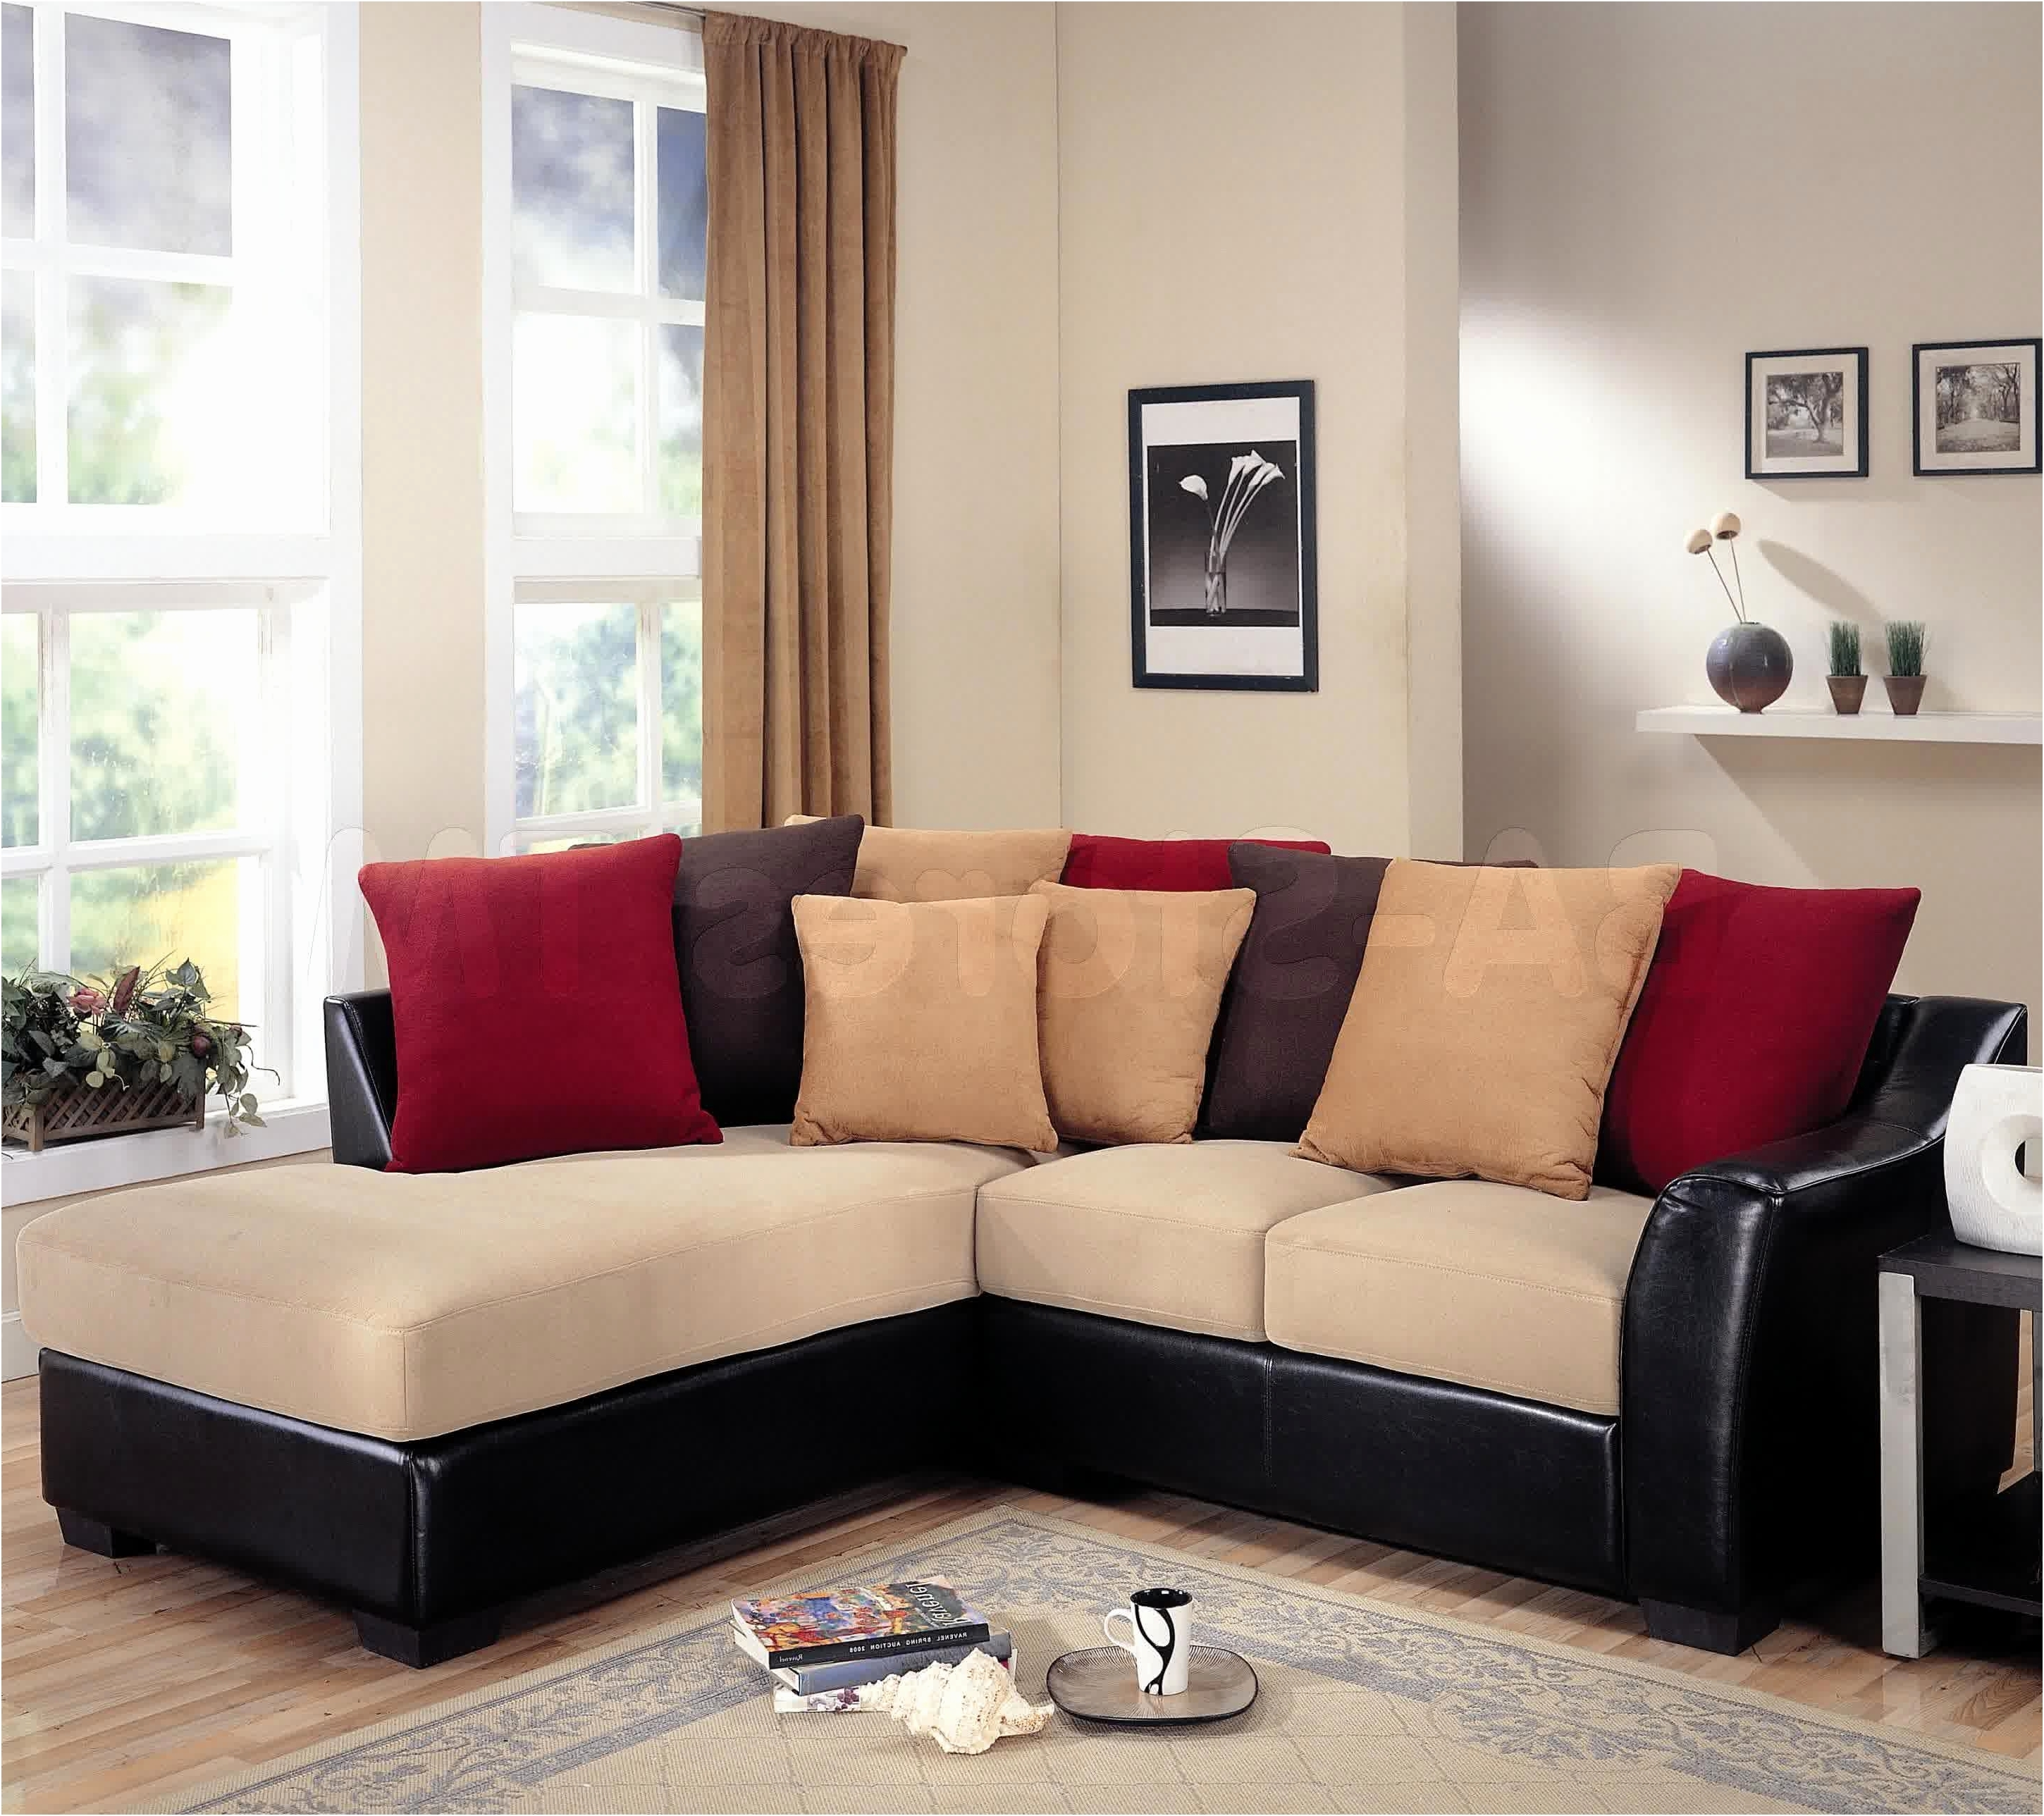 Fresh Sears Leather Sofa New – Intuisiblog Inside Newest Sectional Sofas At Sears (View 4 of 20)